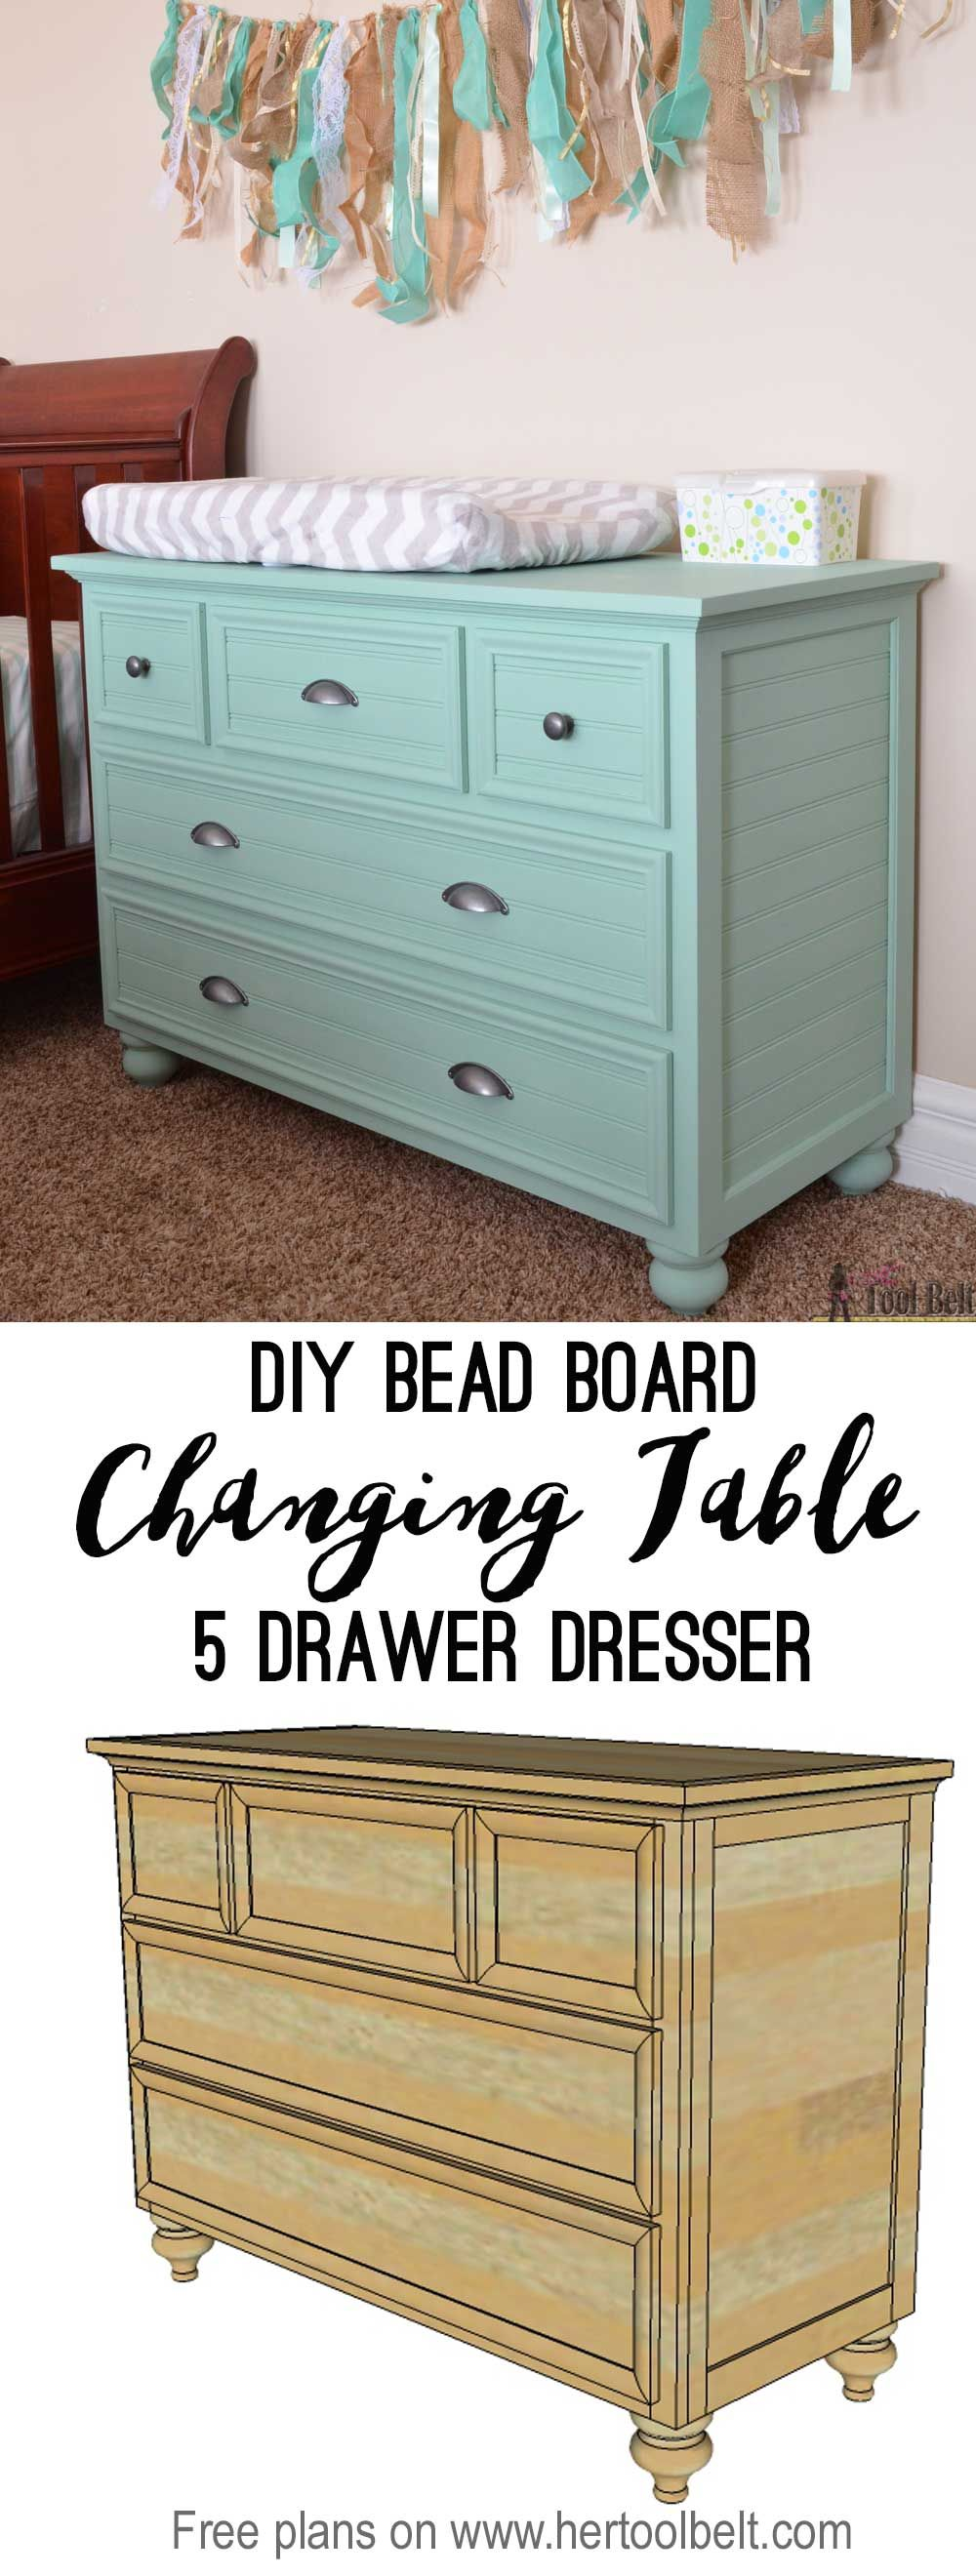 5 Drawer Dresser Changing Table | Sofá de palé, Bricolaje fácil y ...